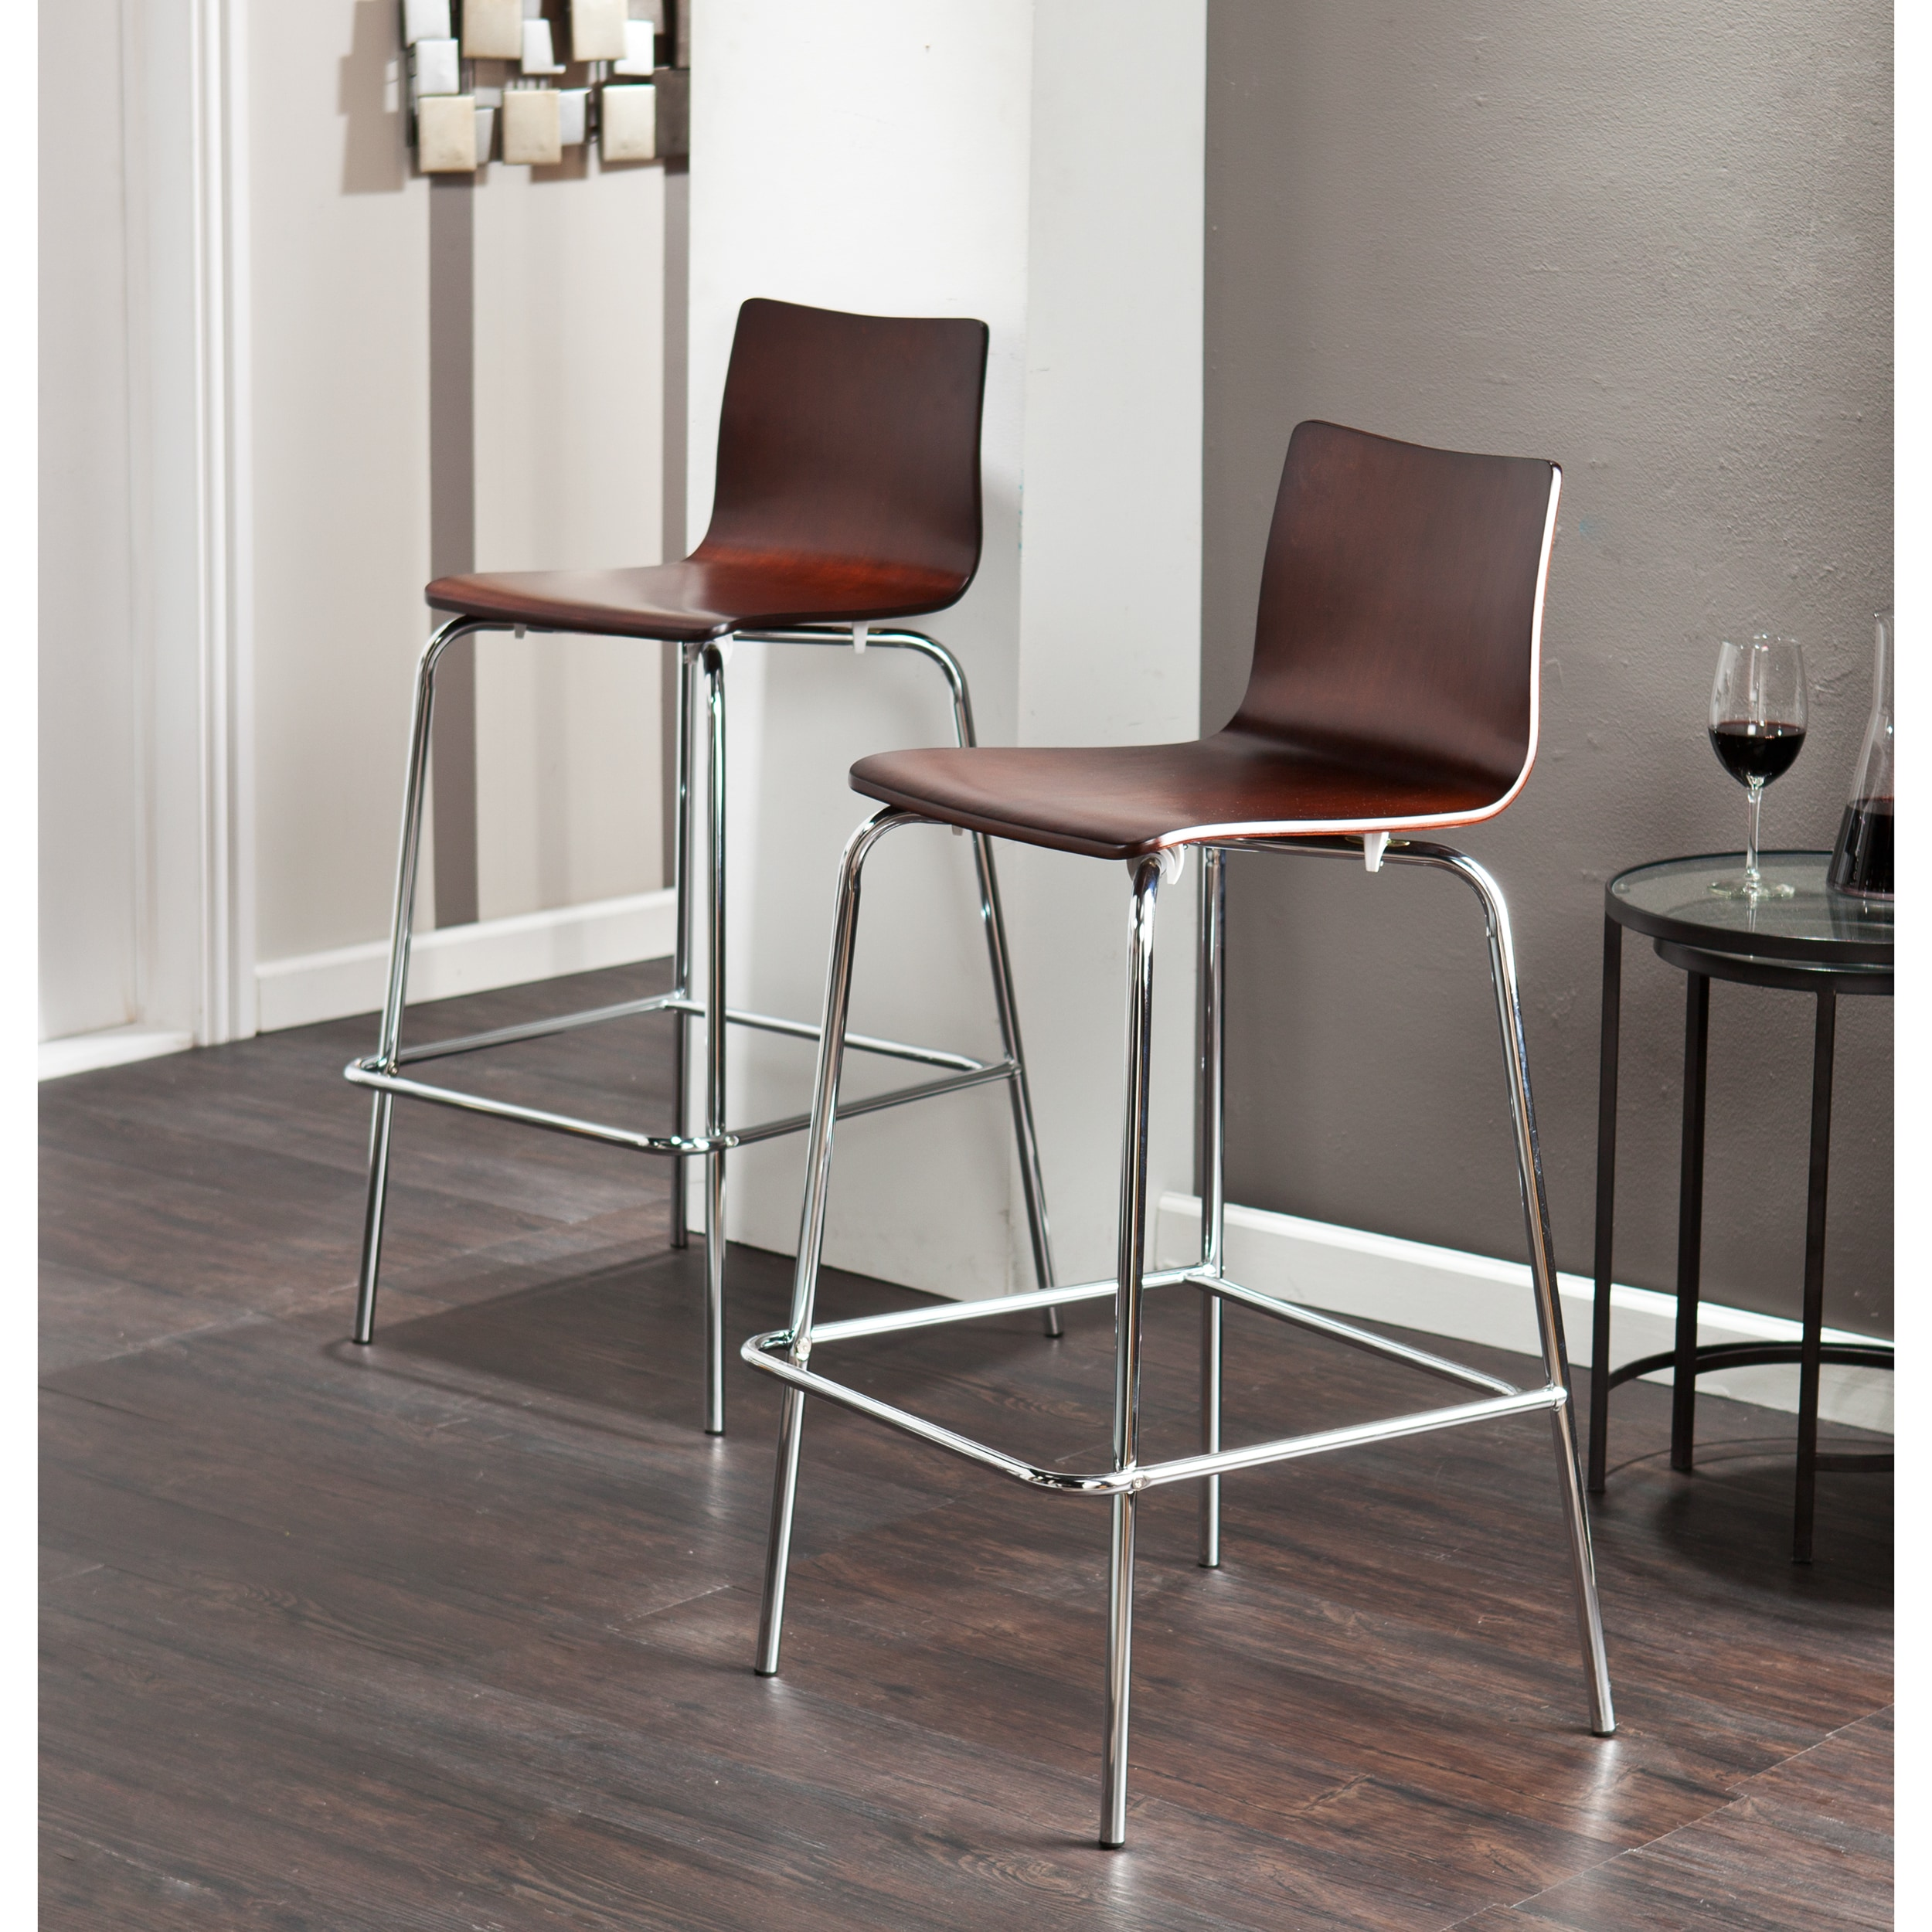 Picture of: Holly Martin Blence Espresso Barstools Set Of 2 Overstock 8903734